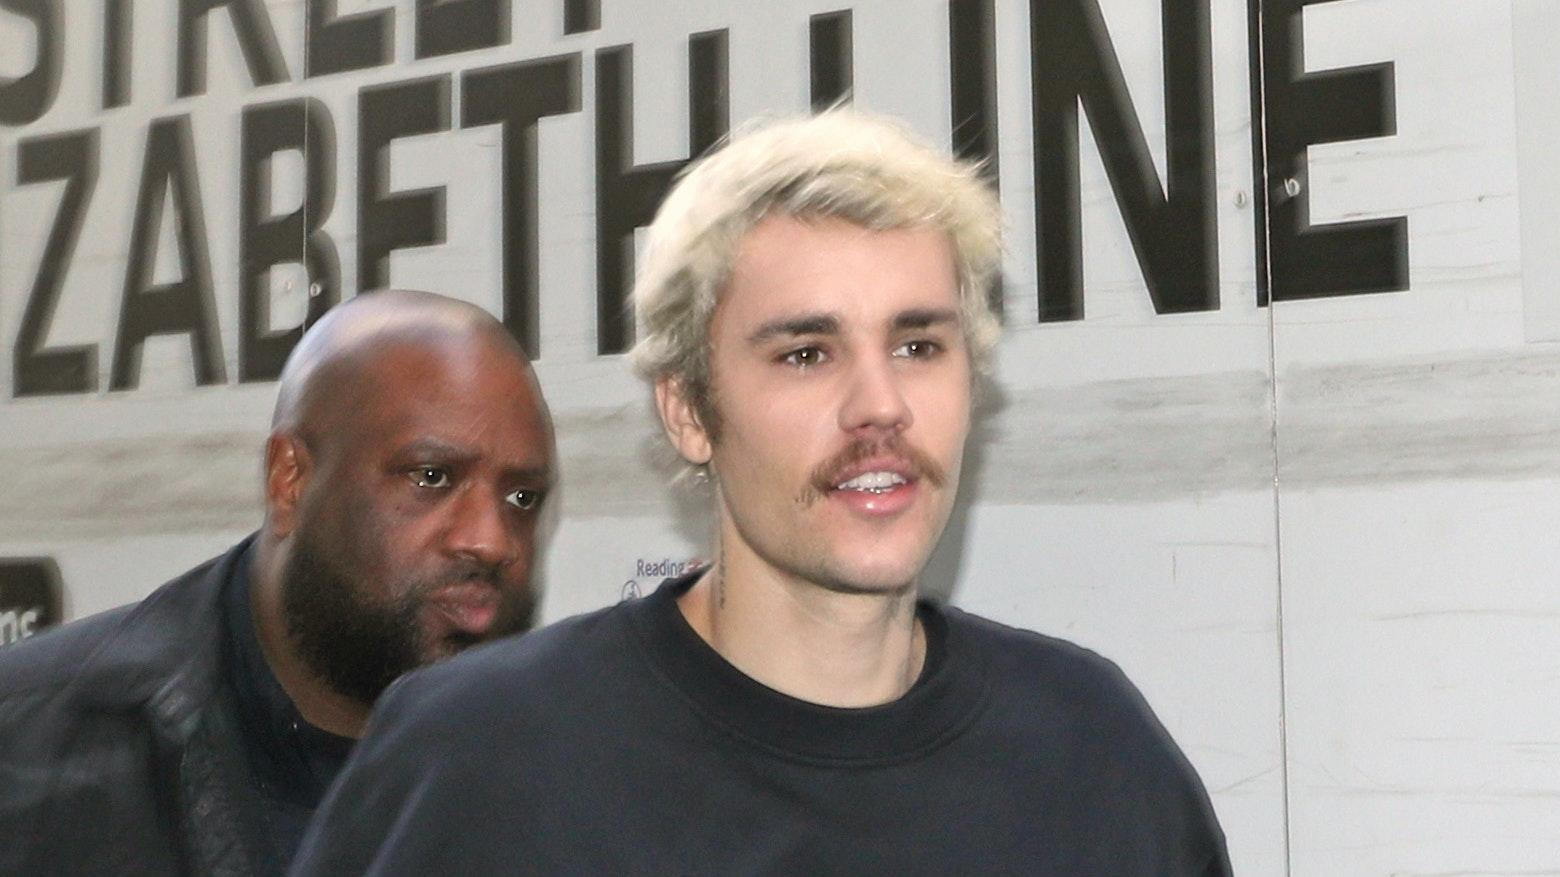 Pastor who 'turned Justin Bieber's life around' leaves church